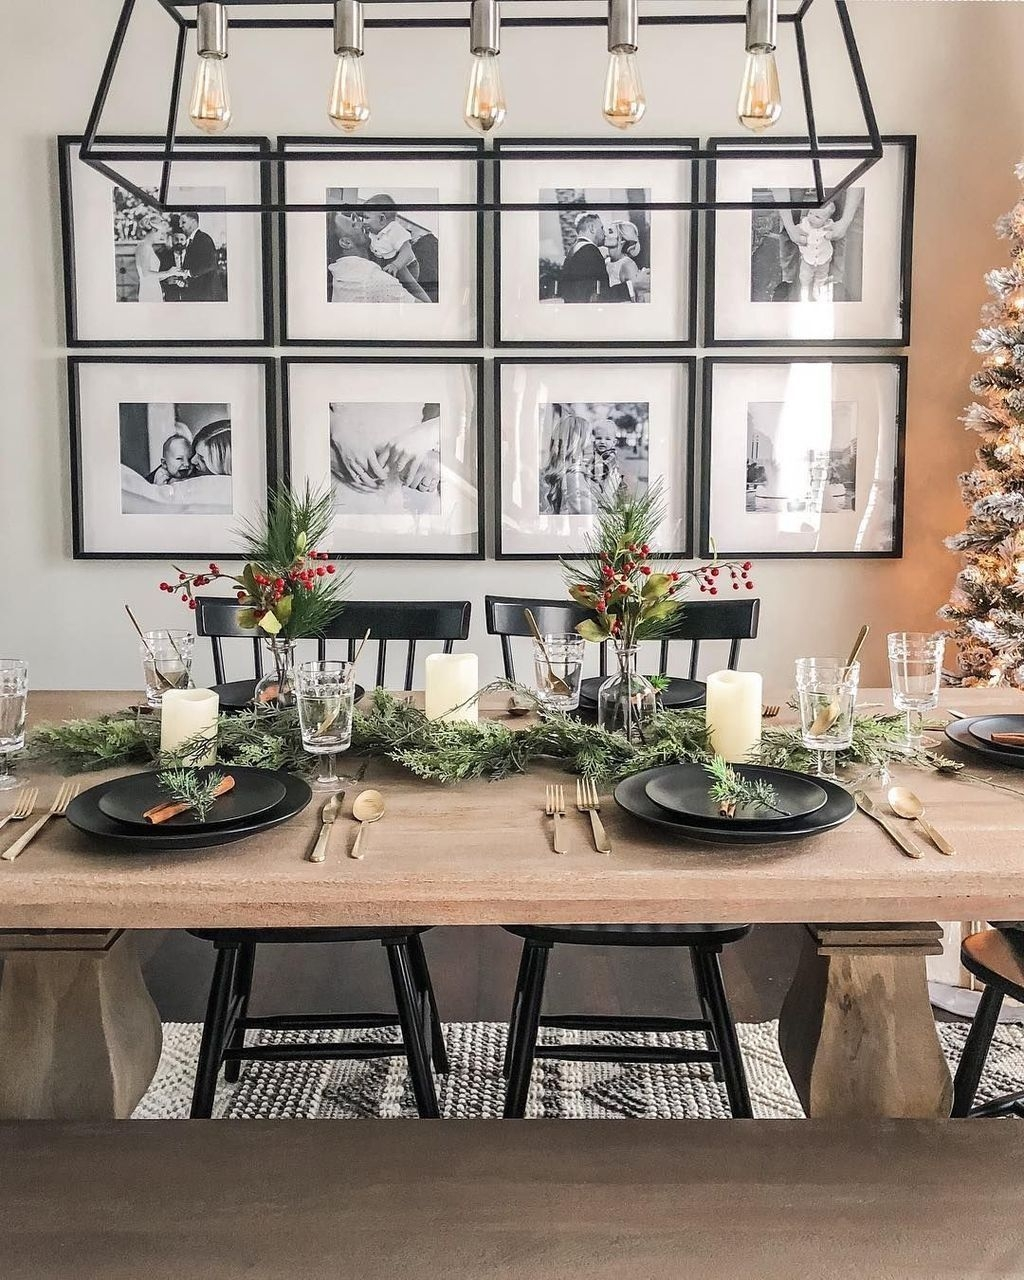 Genius Dining Room Design Ideas You Were Looking For37